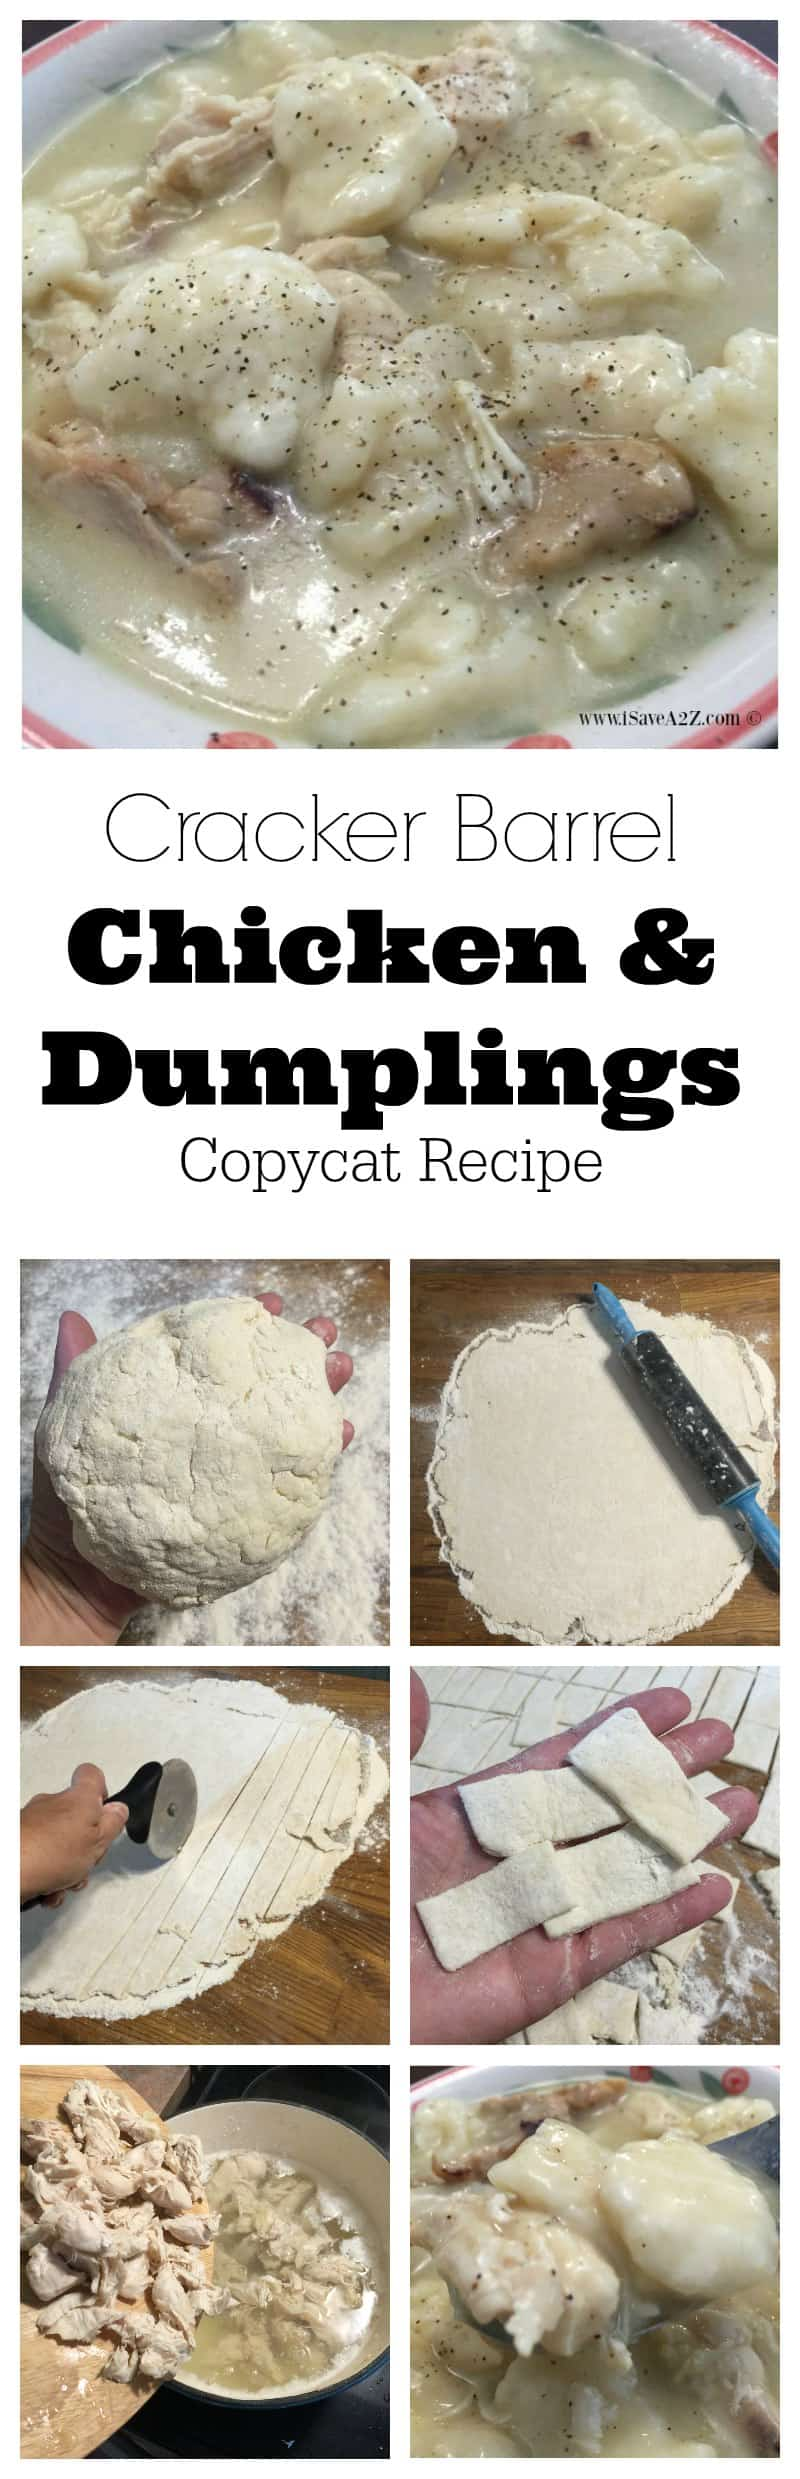 Cracker Barrel Chicken and Dumplings Copycat Recipe